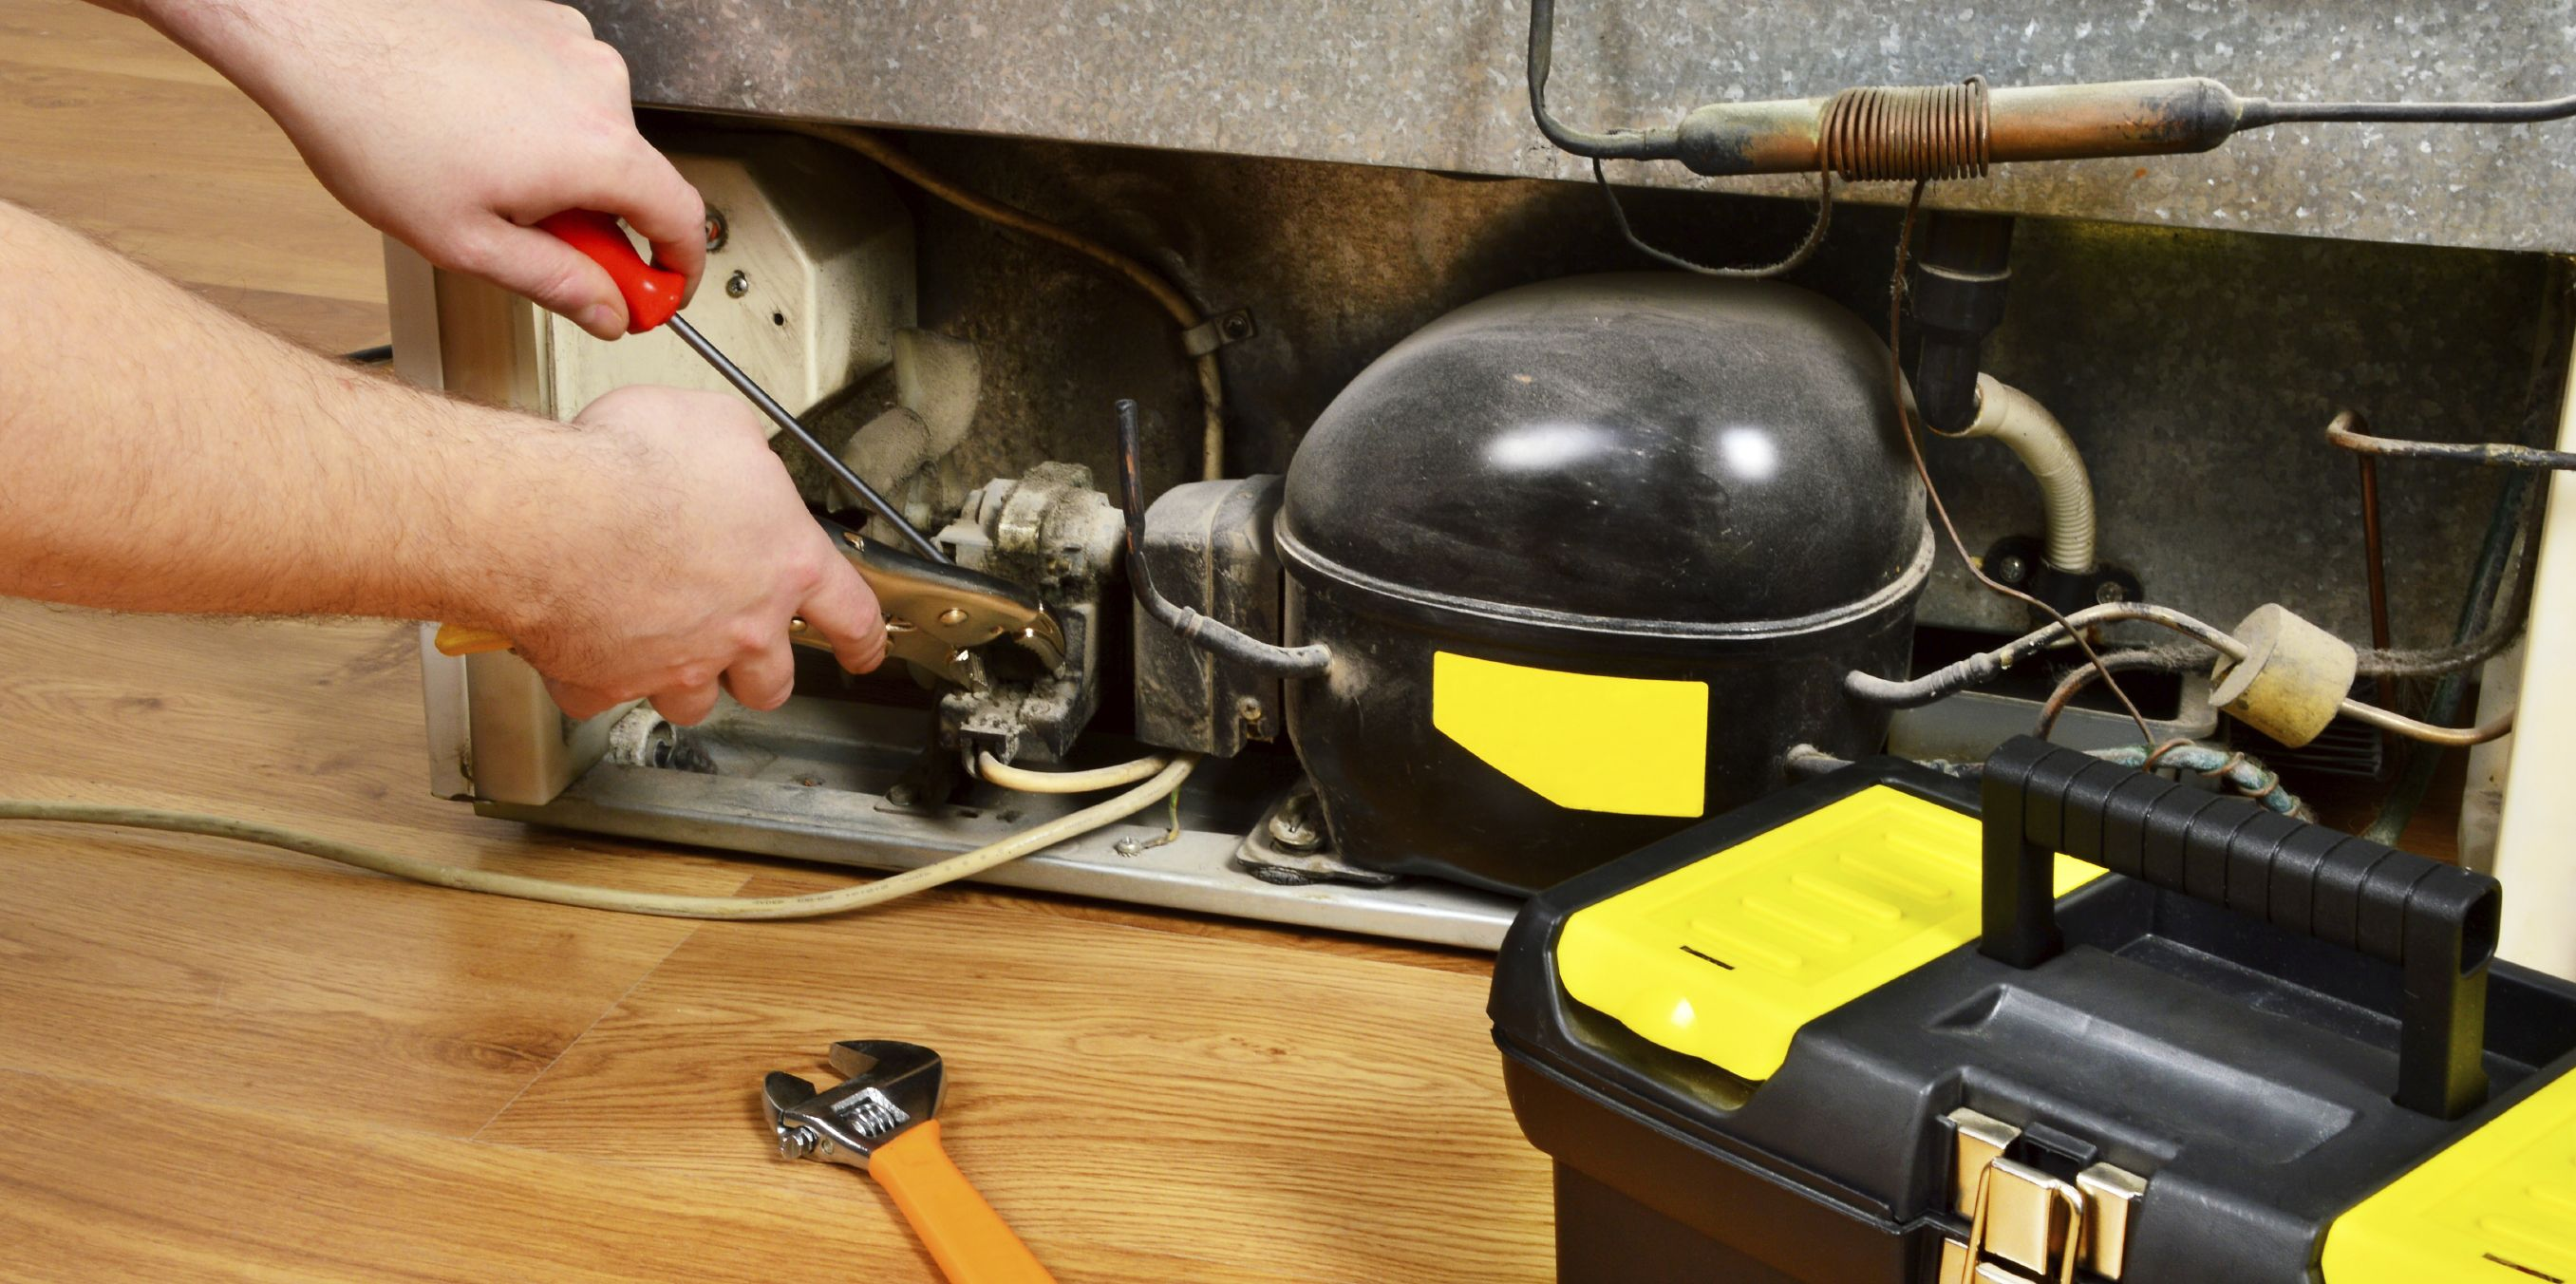 Different types of appliance repairs offered by repair